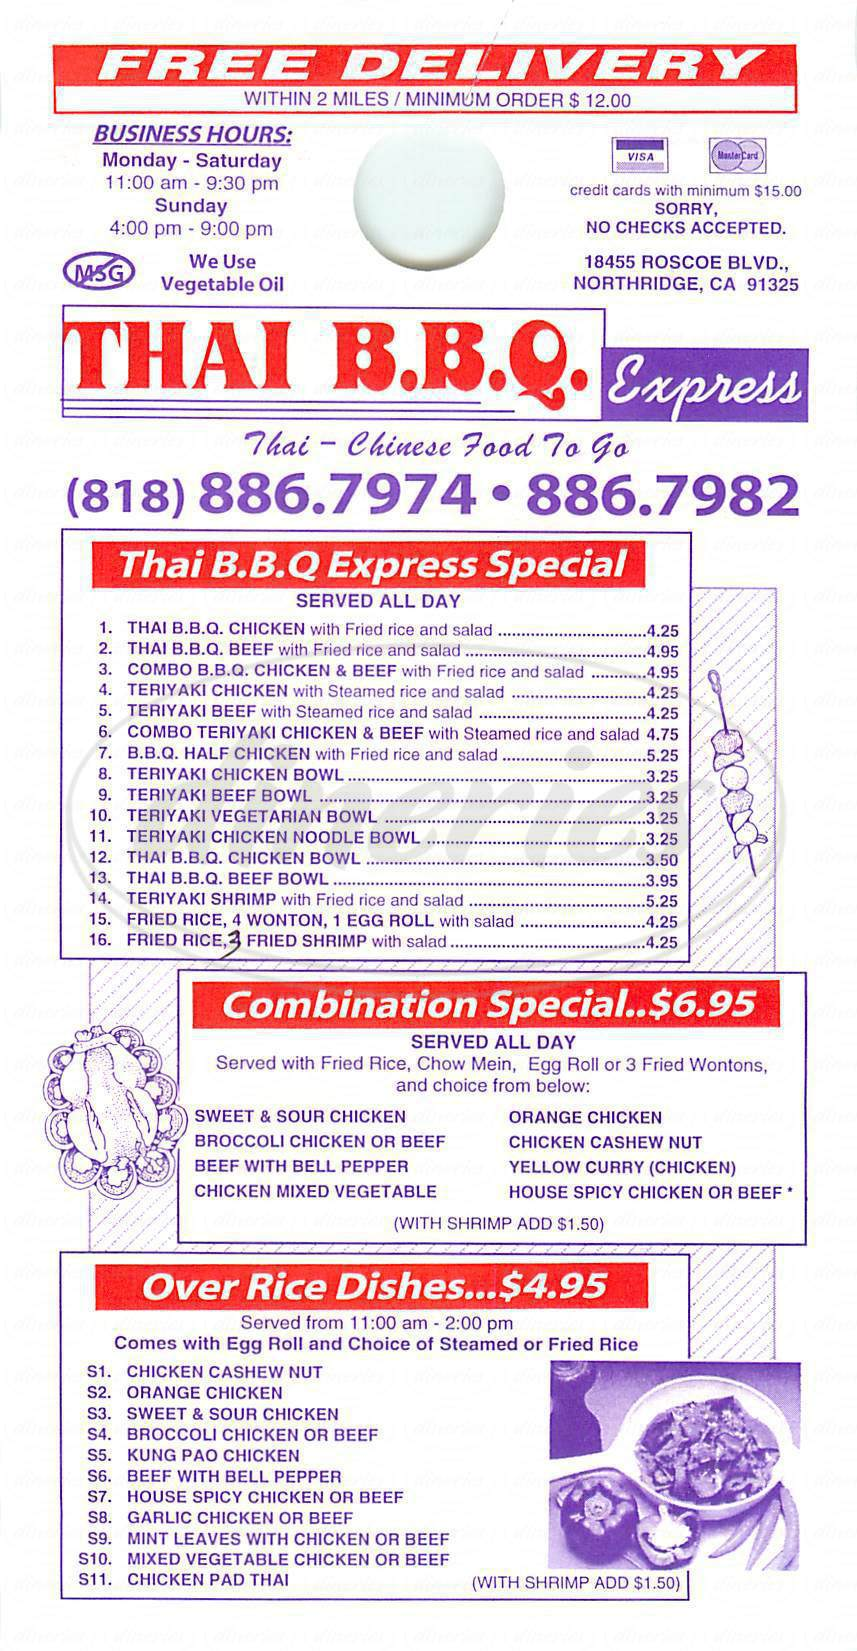 menu for Thai Bbq Express